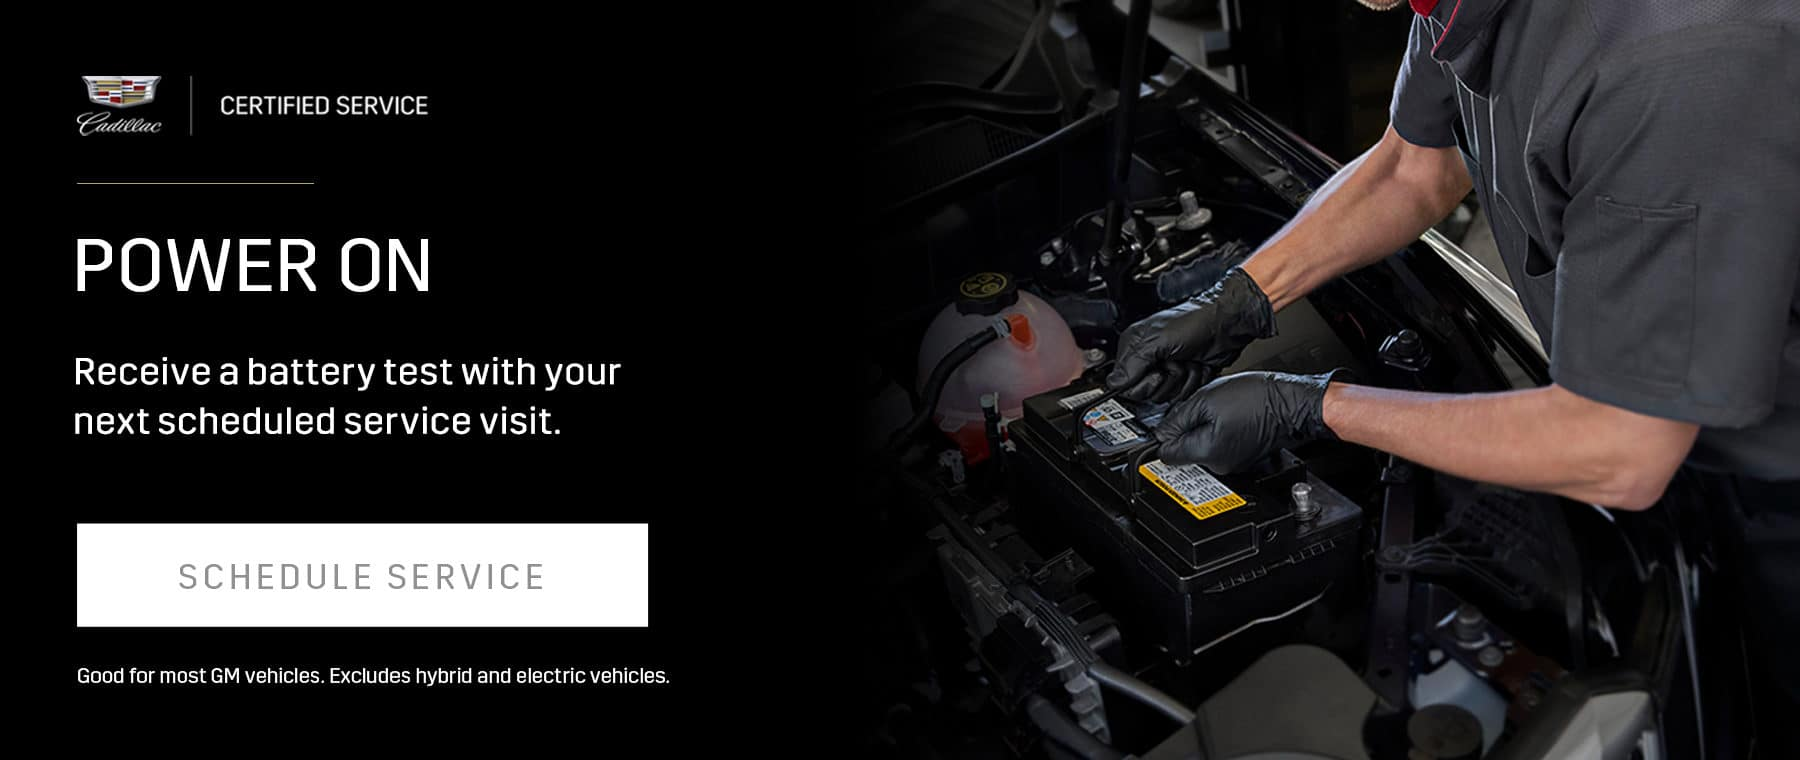 9-NATIONAL-JUNE 2020_CADILLAC CS_NON COMPLIMENTARY BATTERY_1800x760